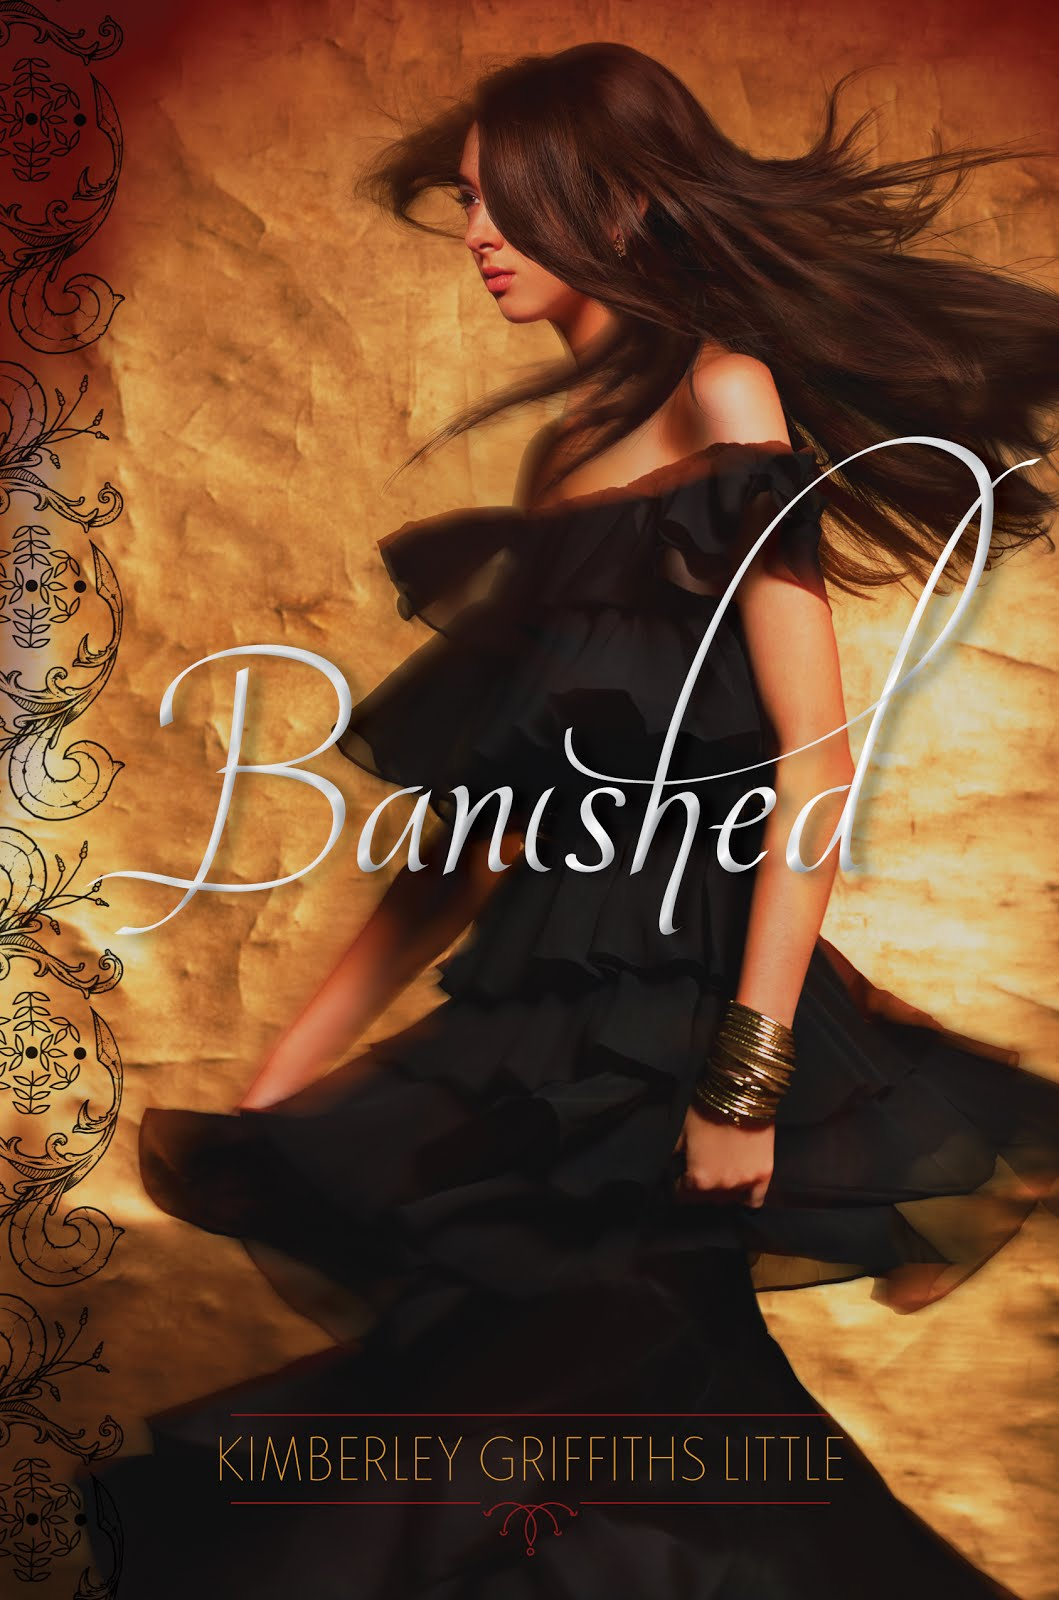 BANISHED, Book 2 in the FORBIDDEN Trilogy, Harpercollins